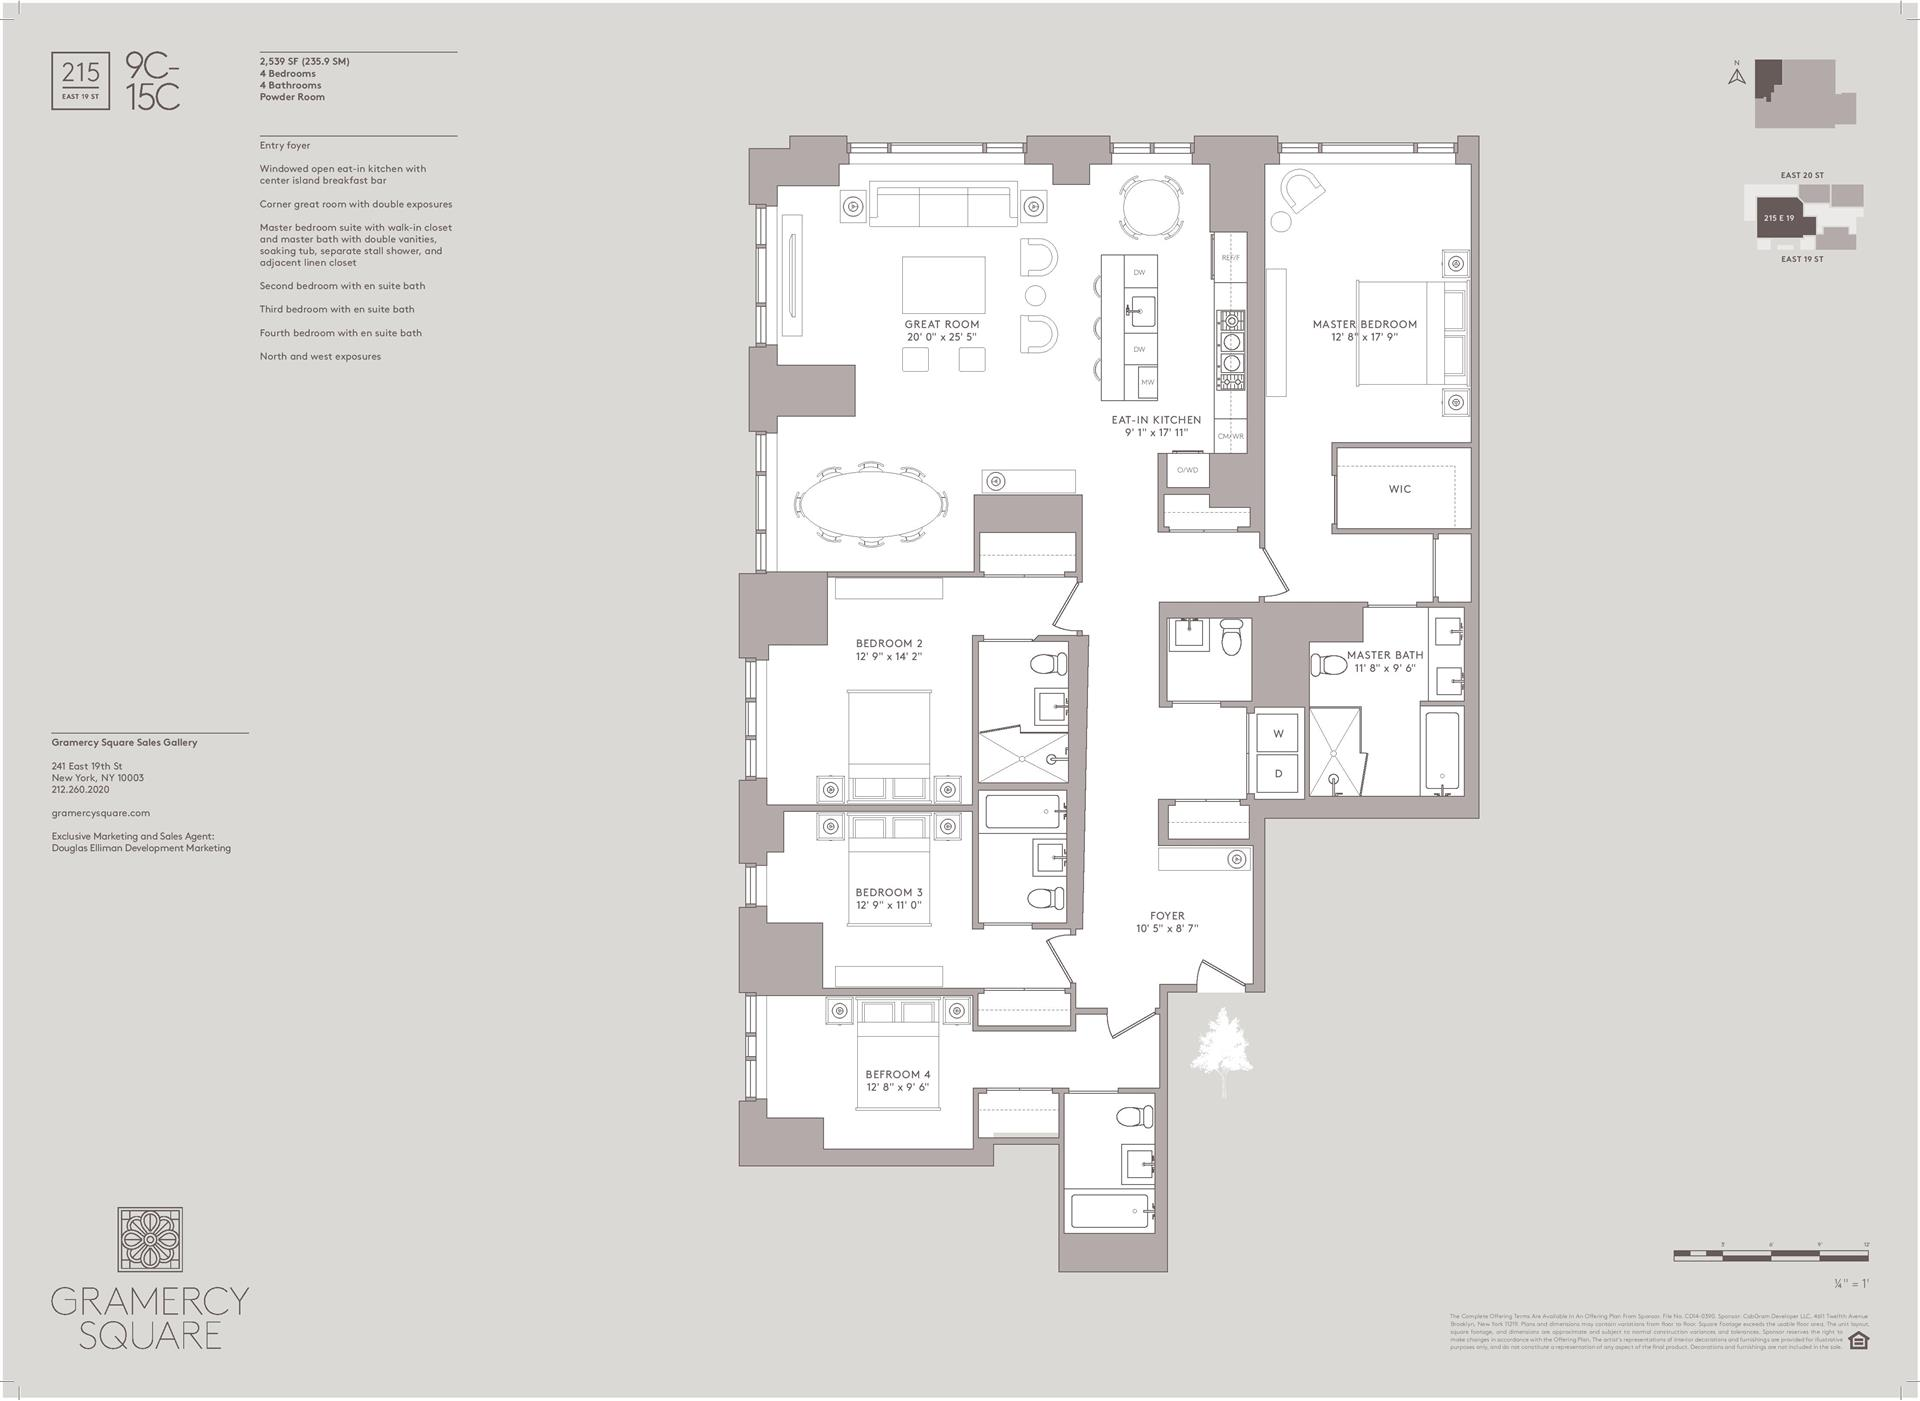 Floor plan of Gramercy Square, 215 East 19th St, 12C - Gramercy - Union Square, New York